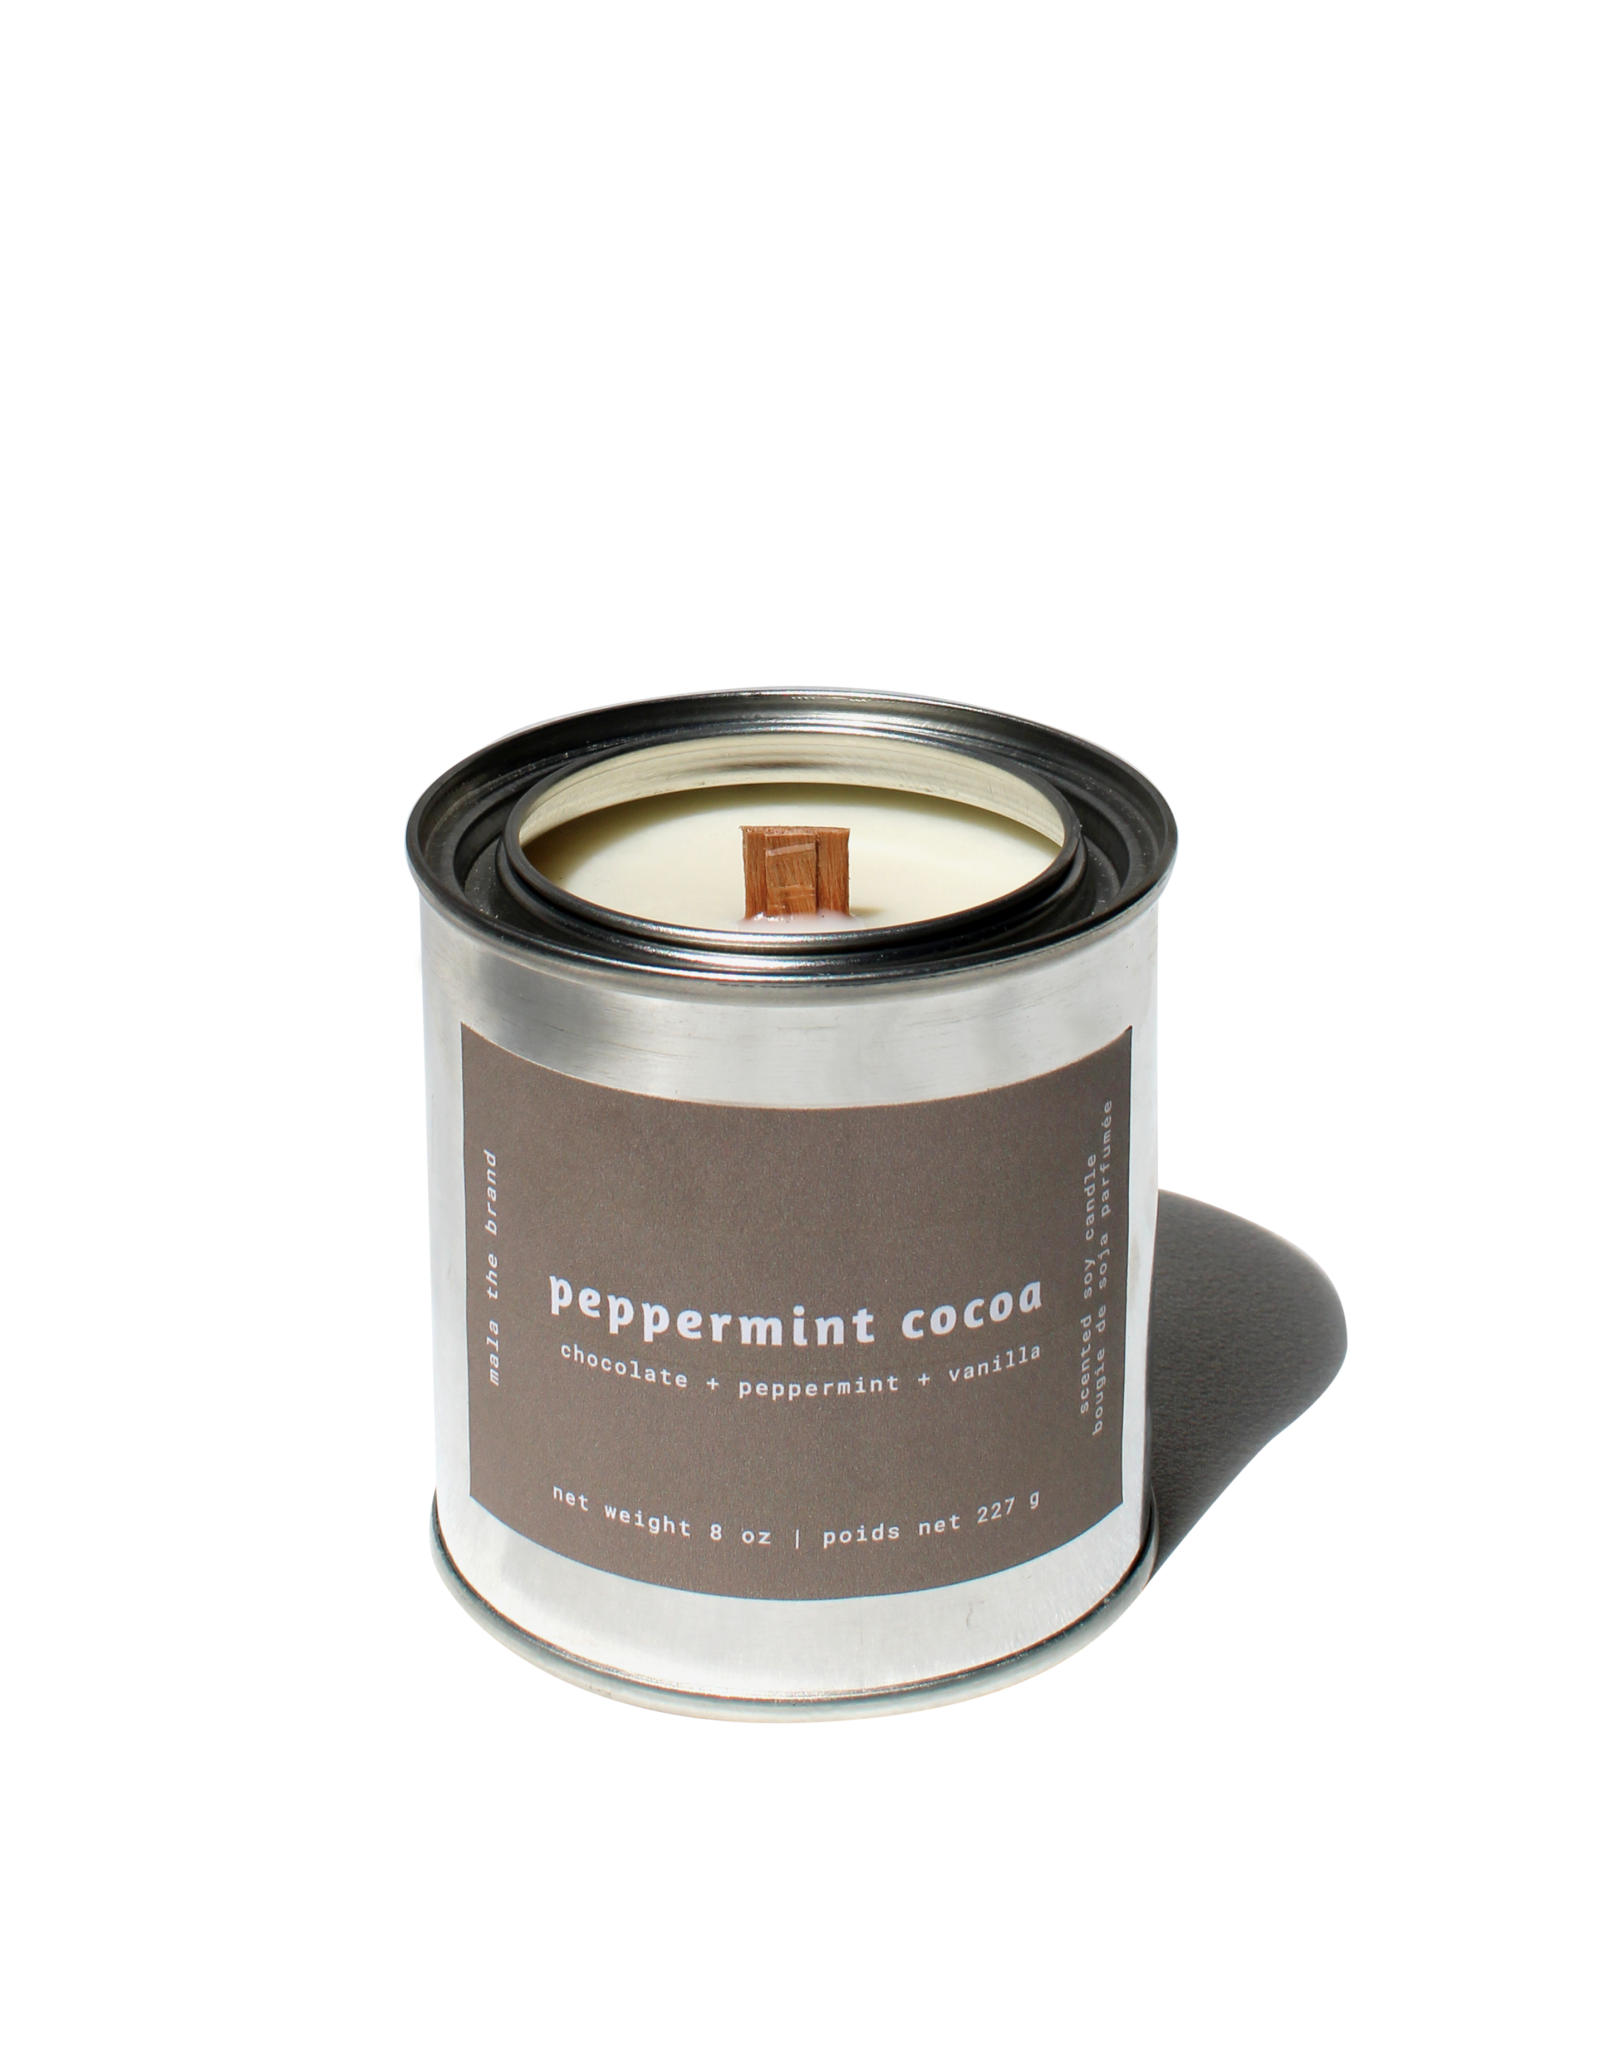 Mala The Brand Peppermint Cocoa Candle / Chocolate + Peppermint + Vanilla